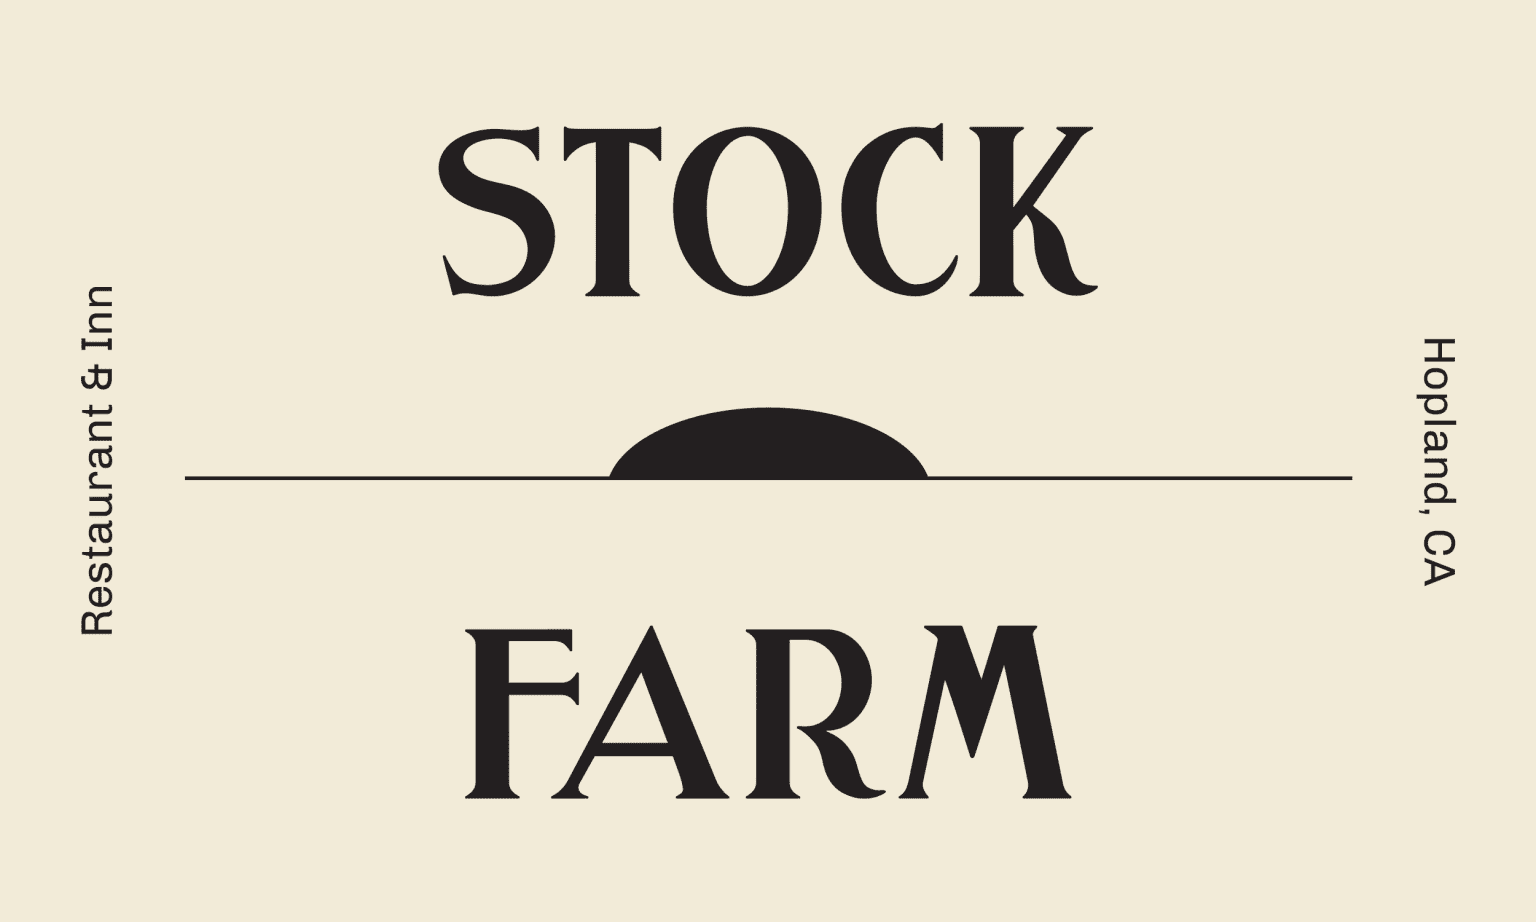 Stock Farm Restaurant Branding & Visual Design